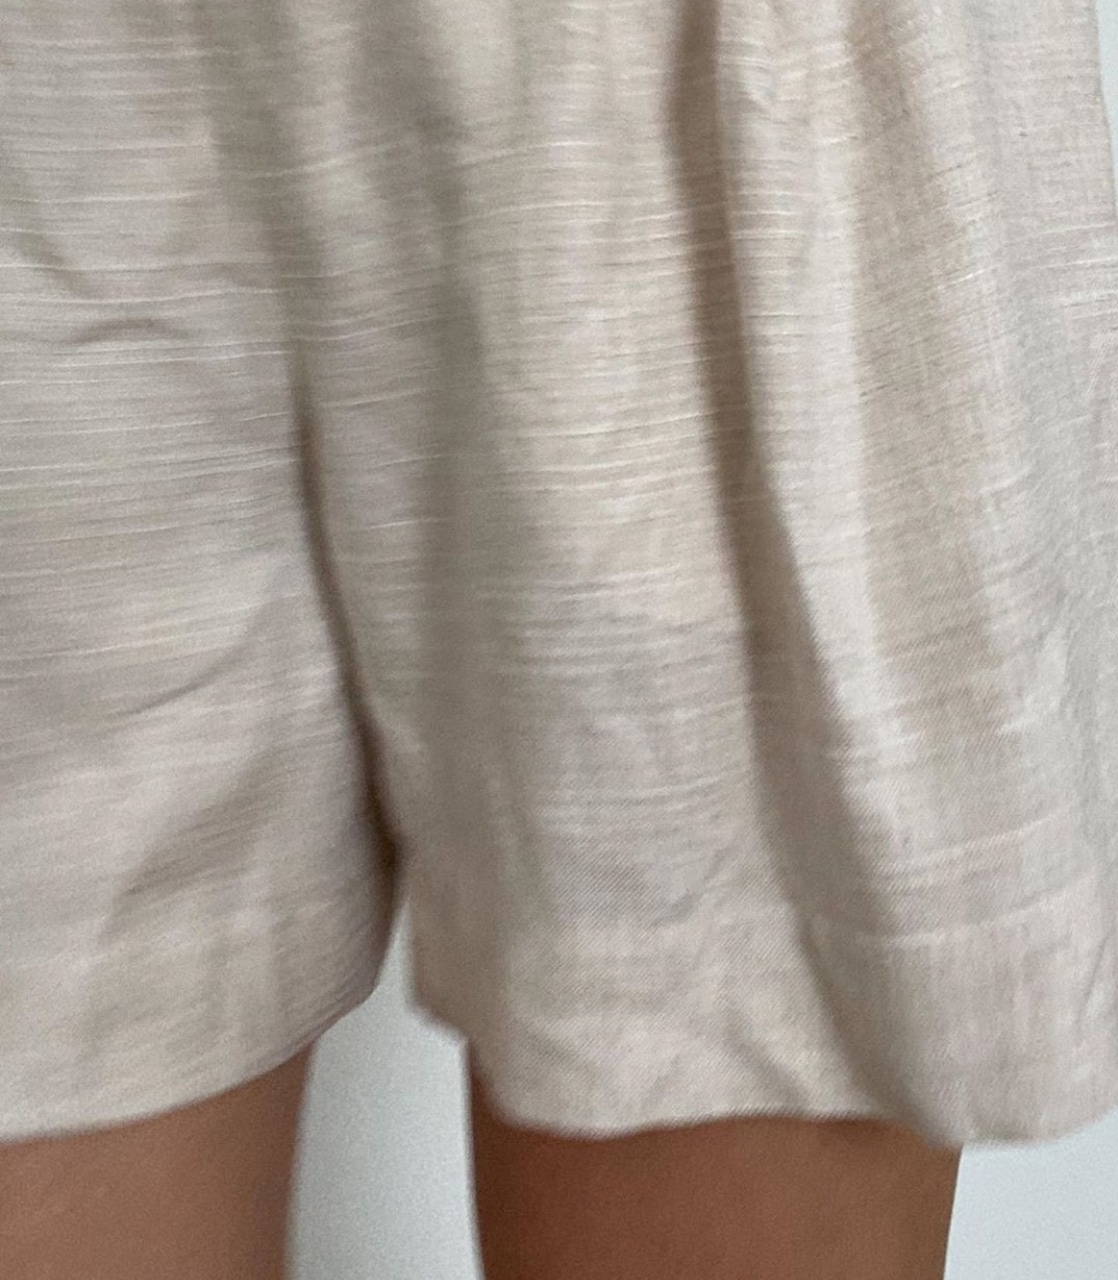 beige, shorts, and skin image